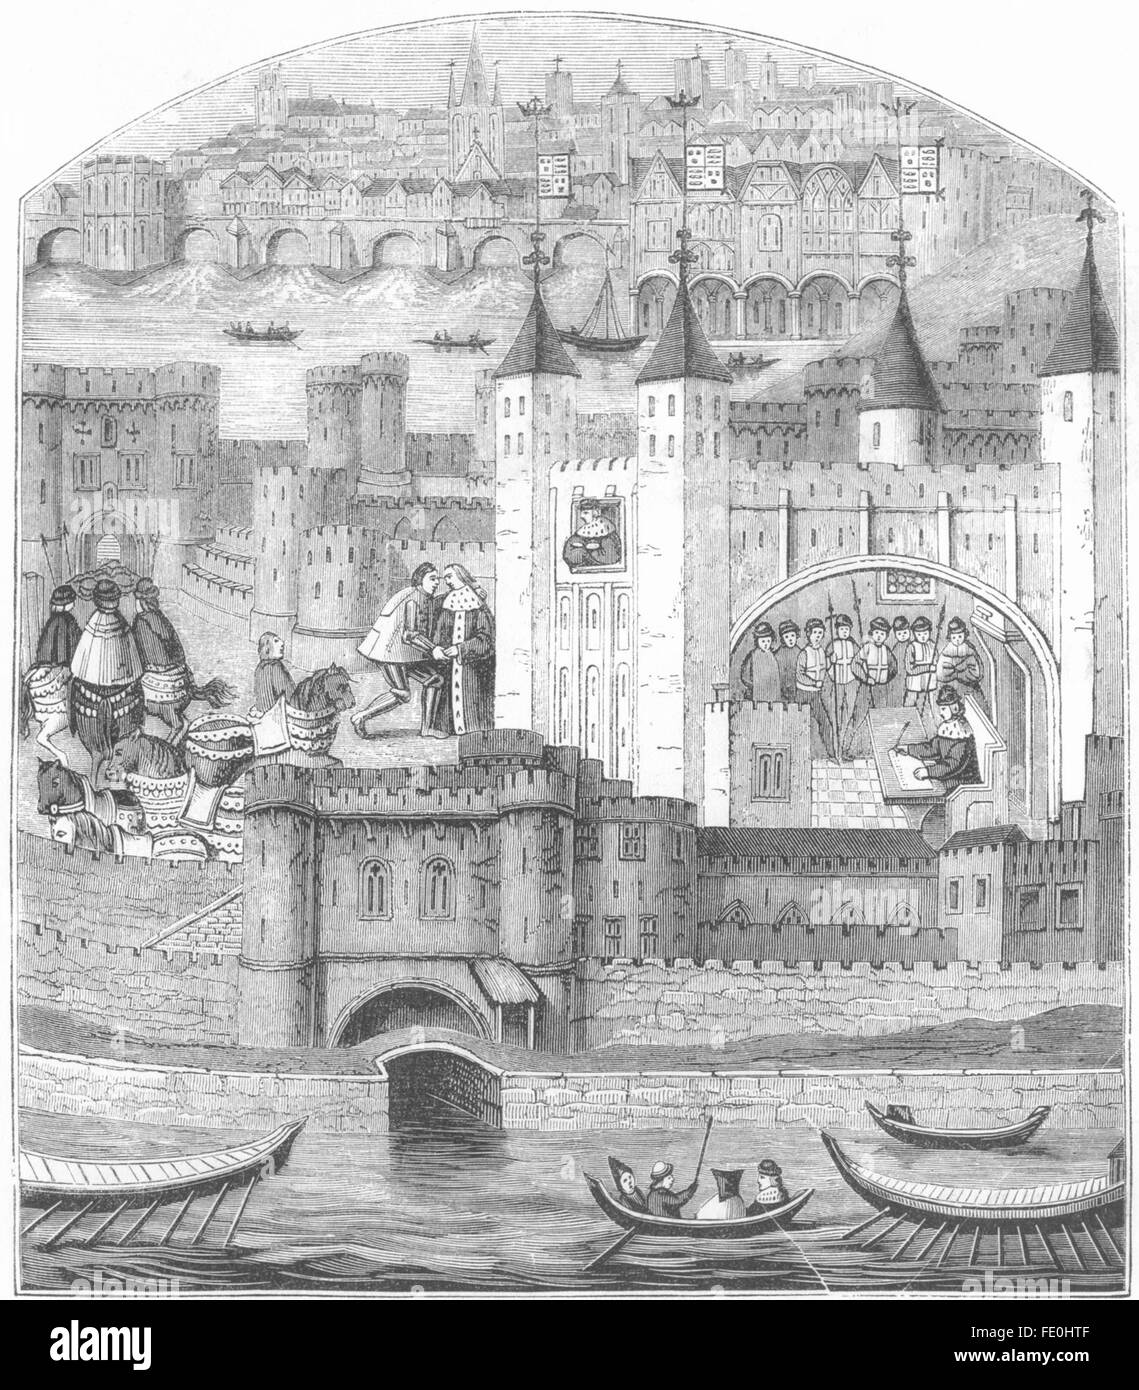 LONDON: The Tower in the 15th Century, antique print 1845 - Stock Image